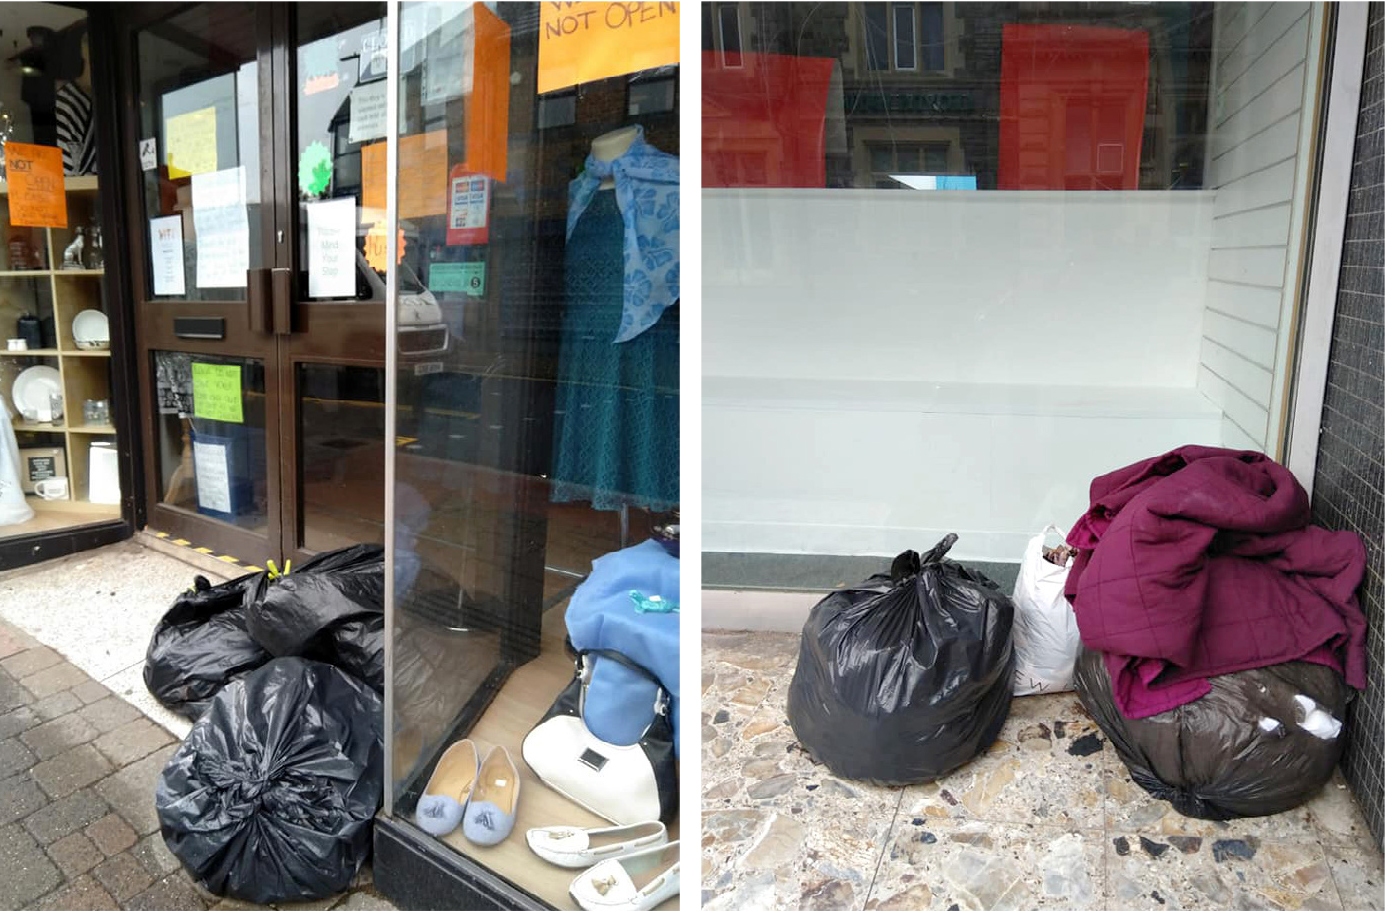 People who leave donations outside closed shops in Kingswood are in effect fly-tipping